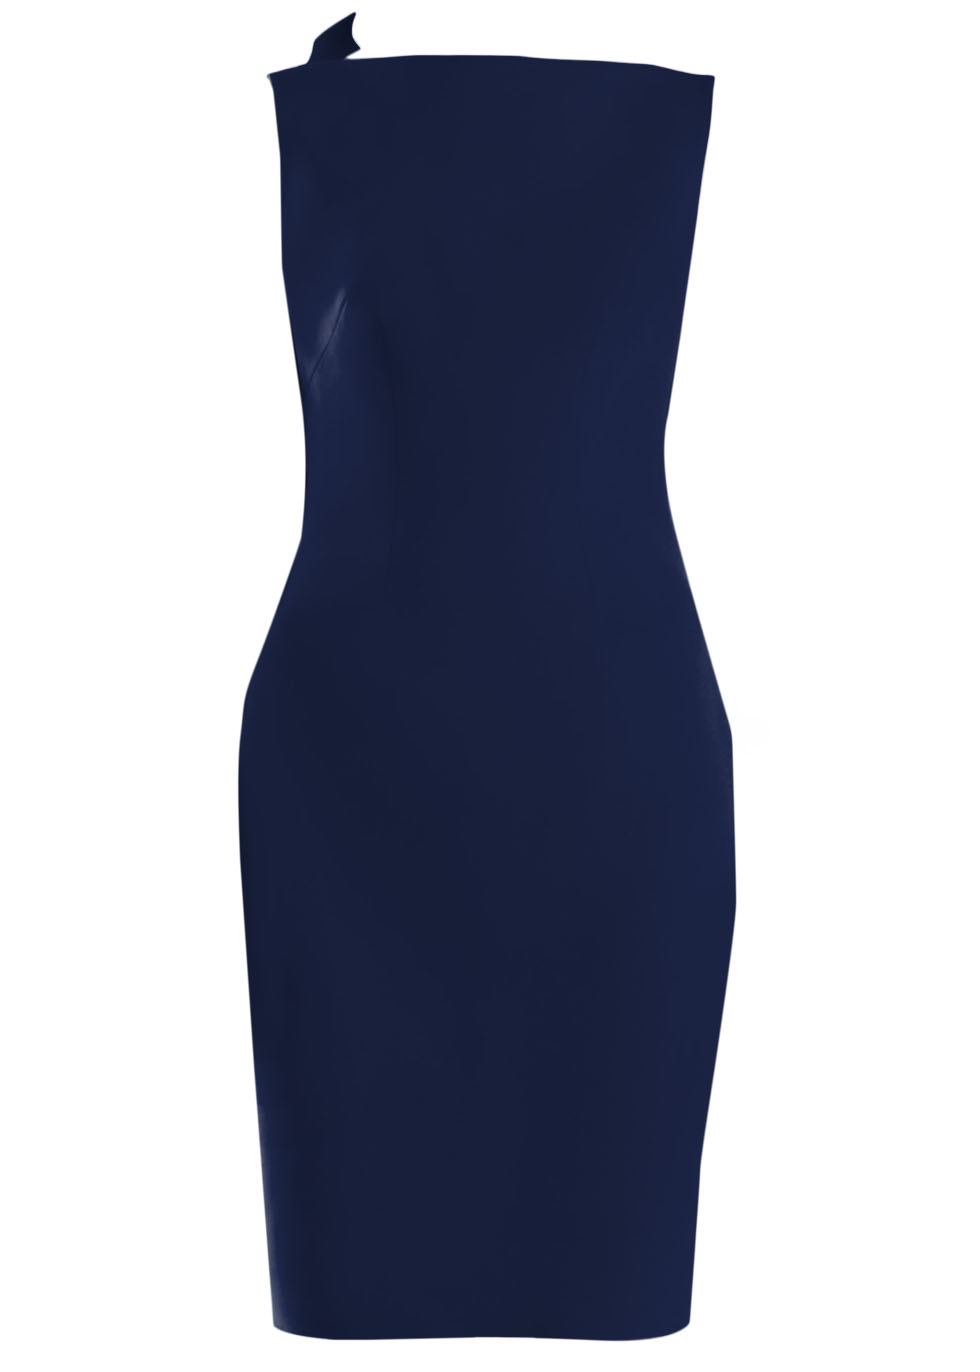 Back Ruffle dress_navy-image.jpg